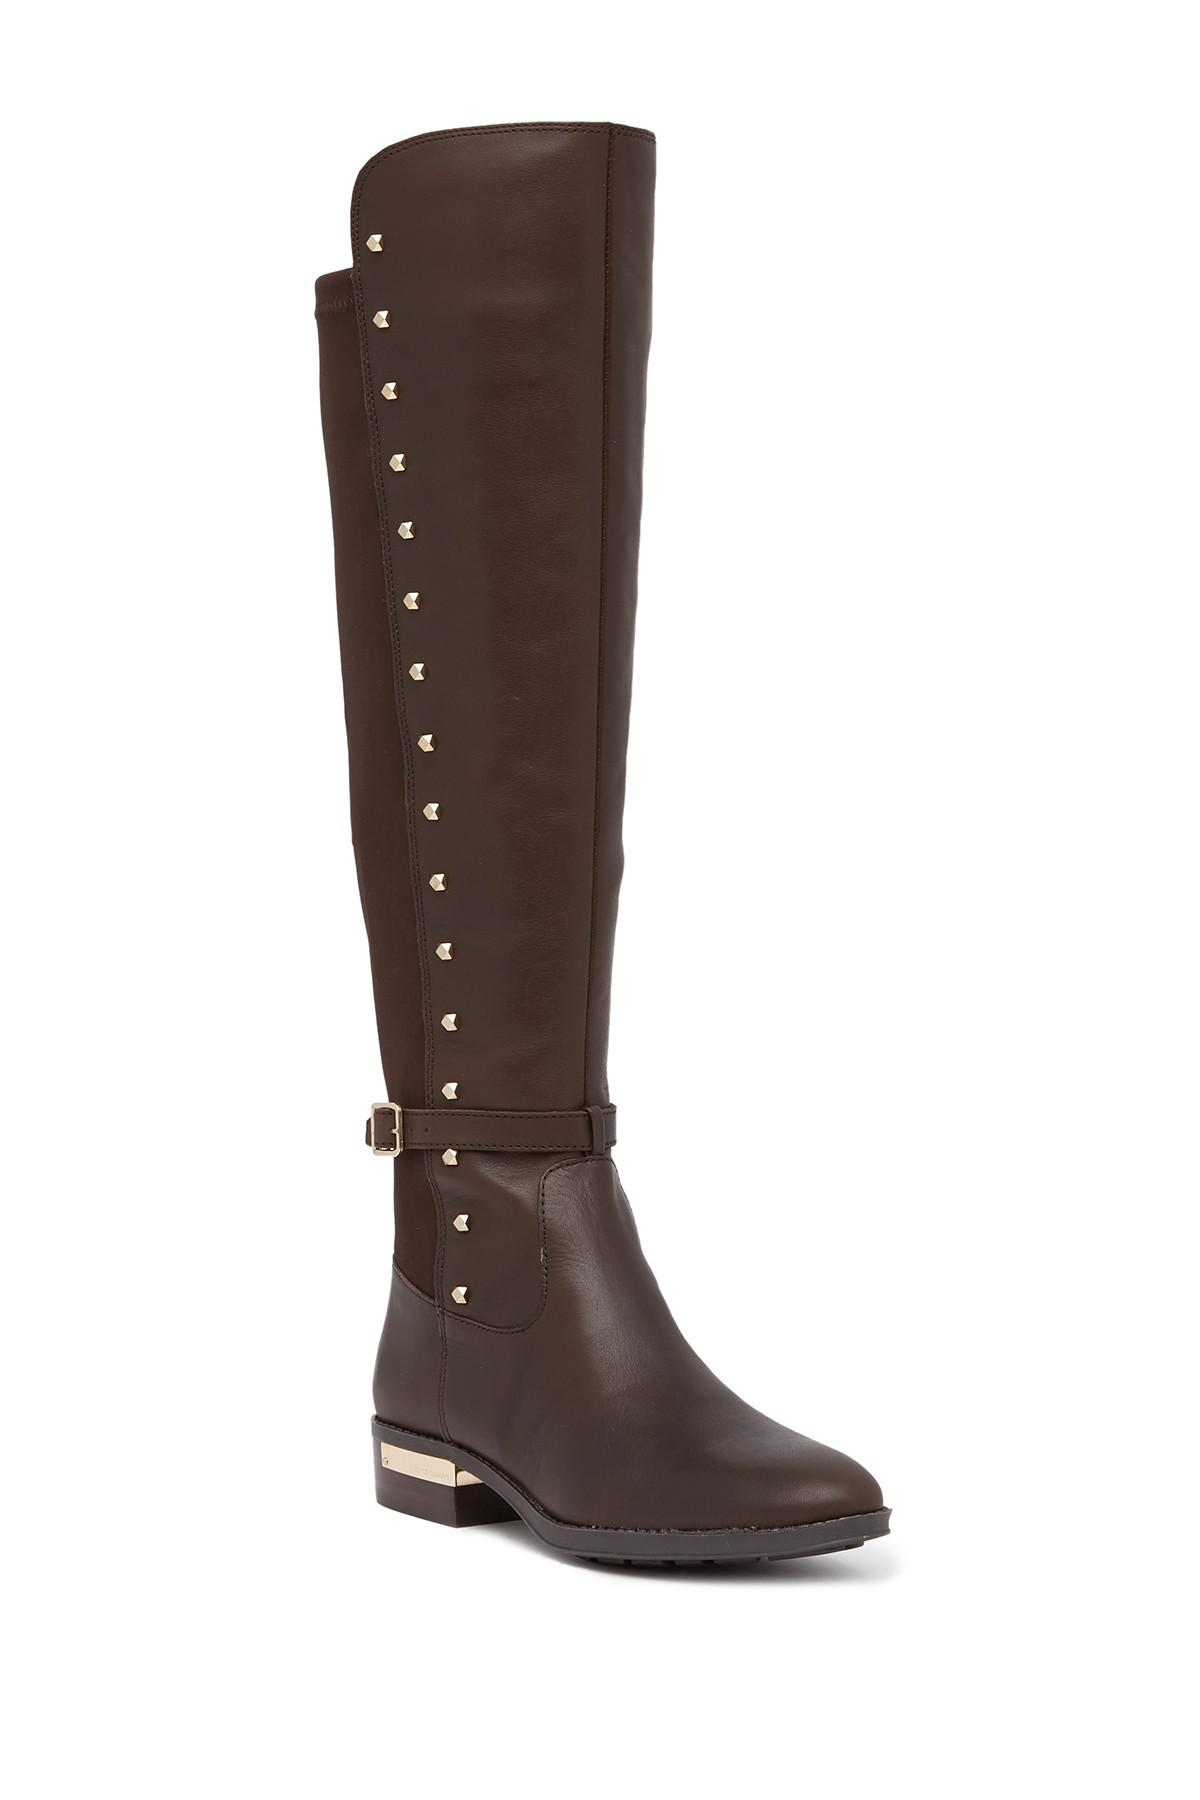 9208eefec8a Lyst - Vince Camuto Pelda Riding Boot in Brown